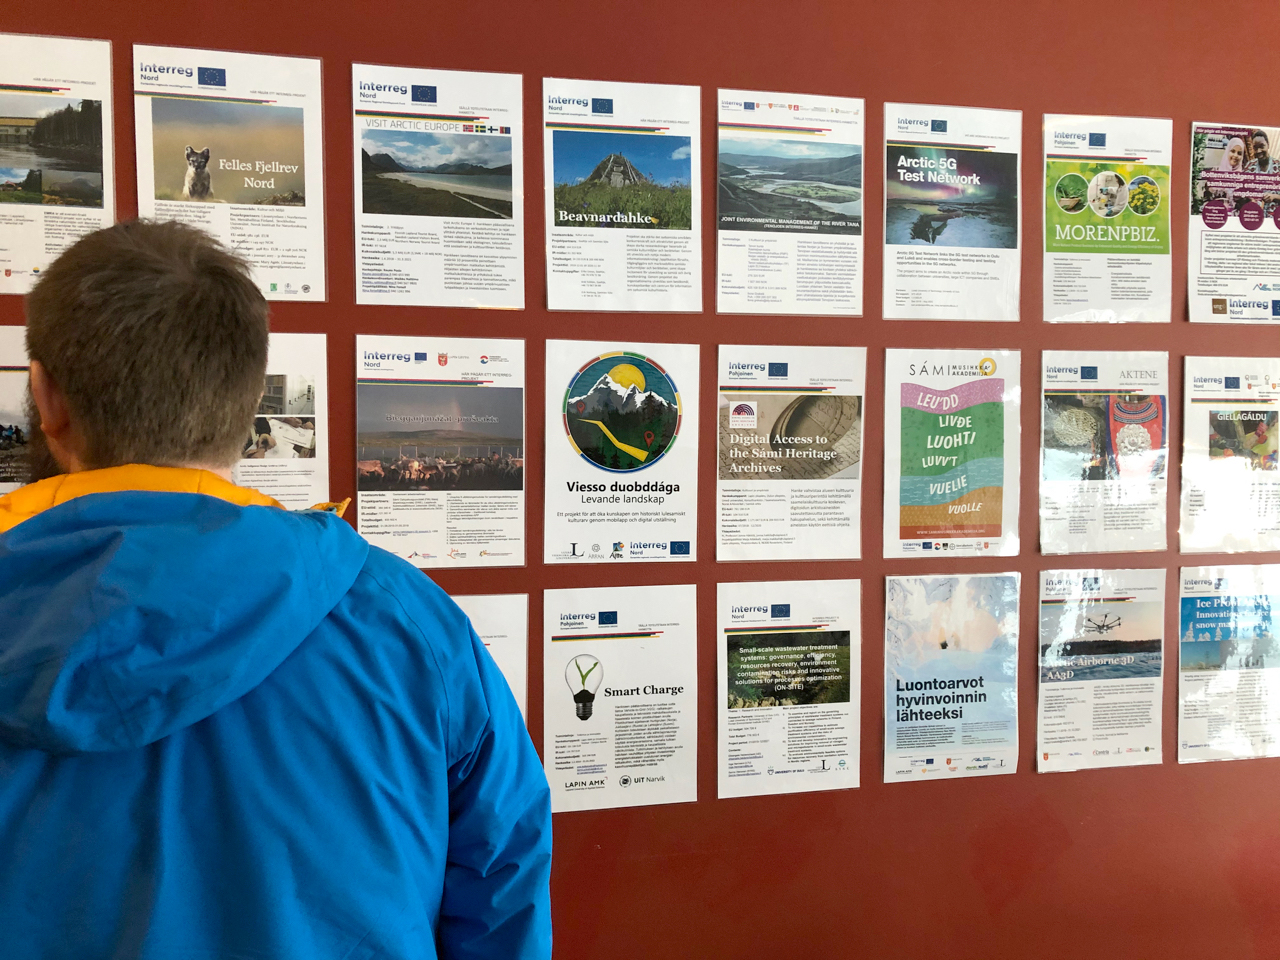 Interreg_Nord_Conference_Project_exhibtion-4